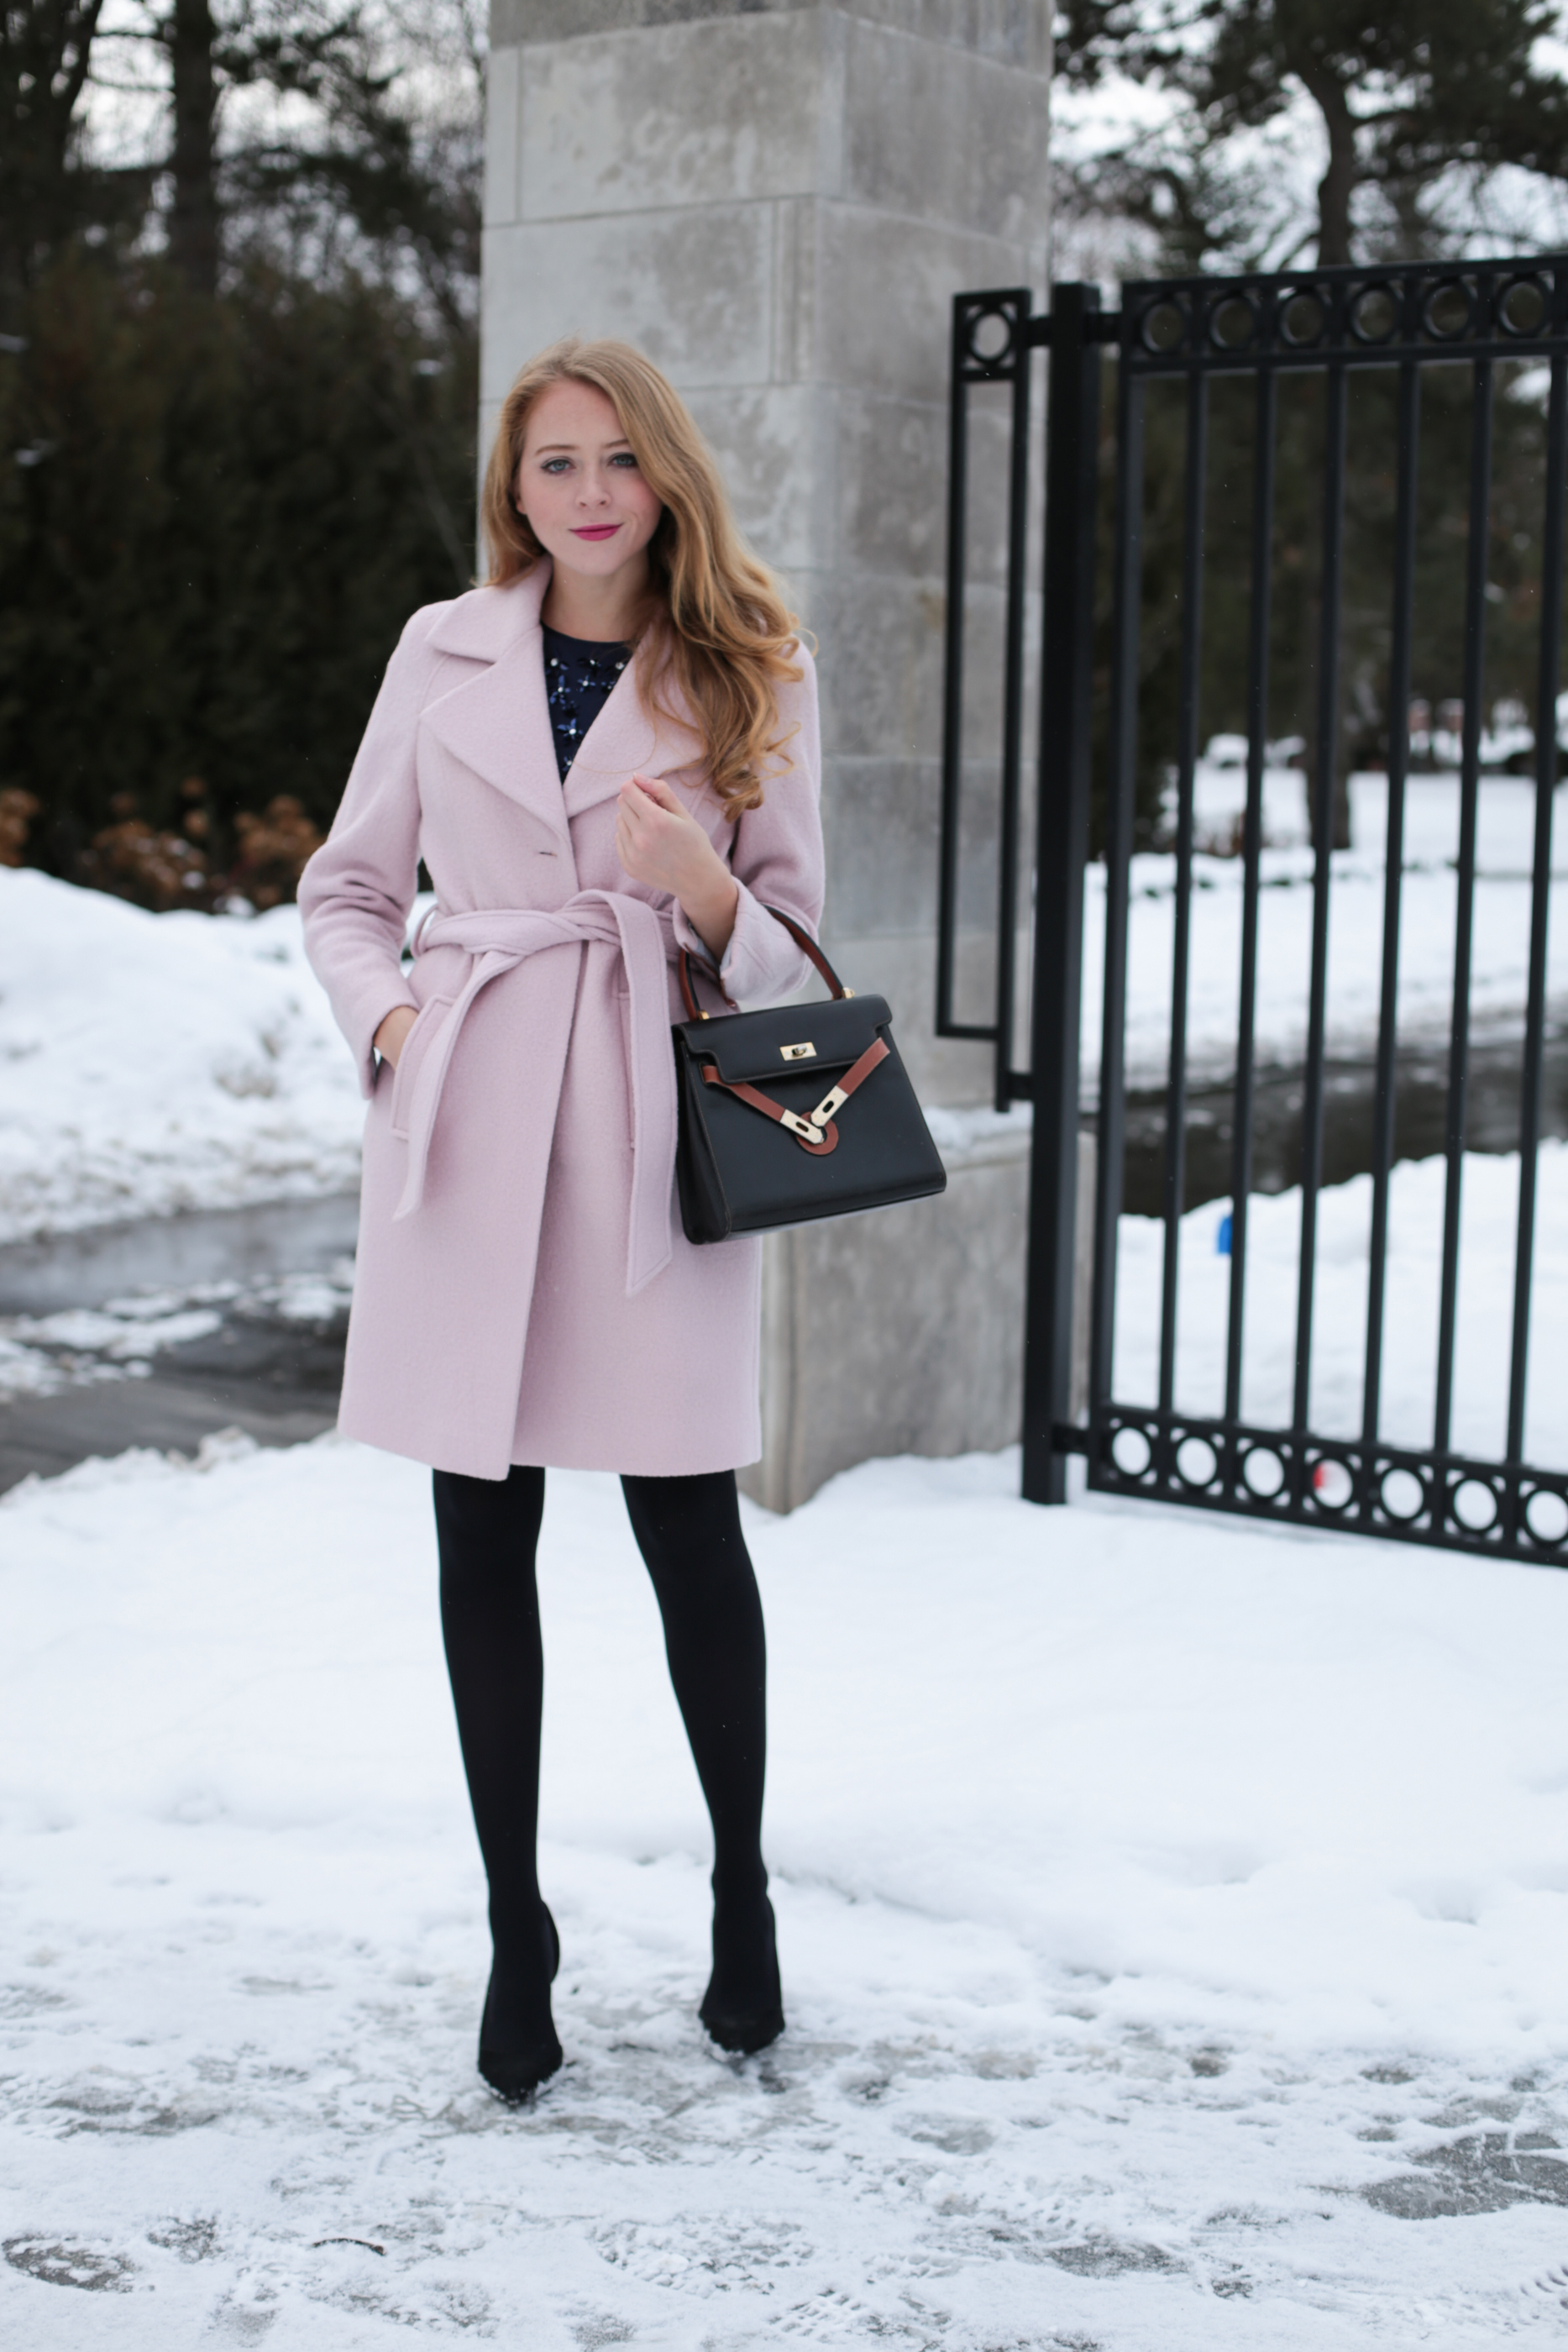 jackie-o-inspired-outfit-5-of-10